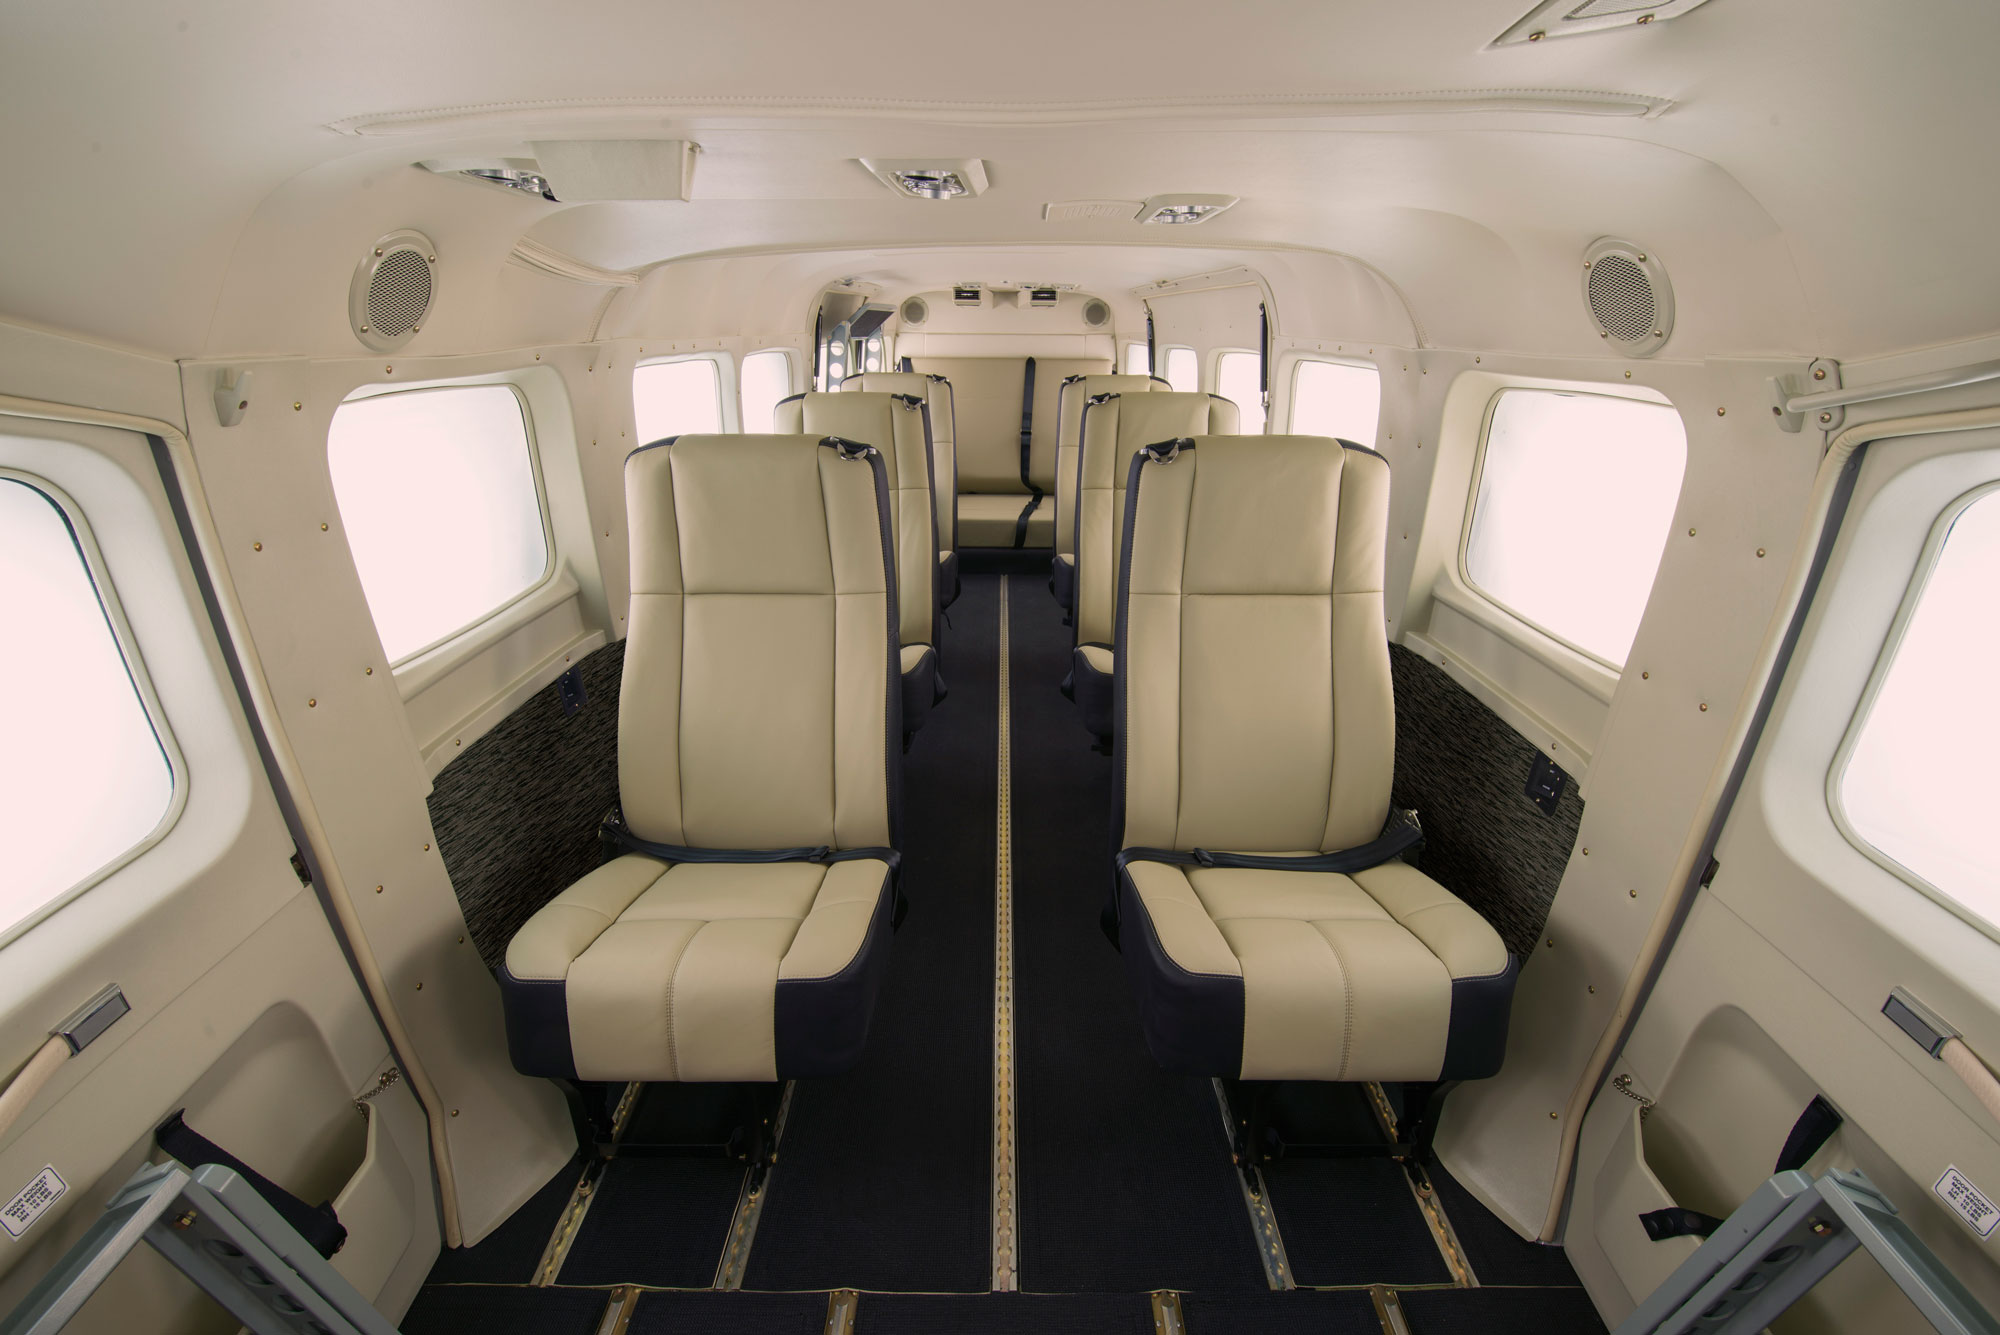 cessna 208 interior images galleries with a bite. Black Bedroom Furniture Sets. Home Design Ideas